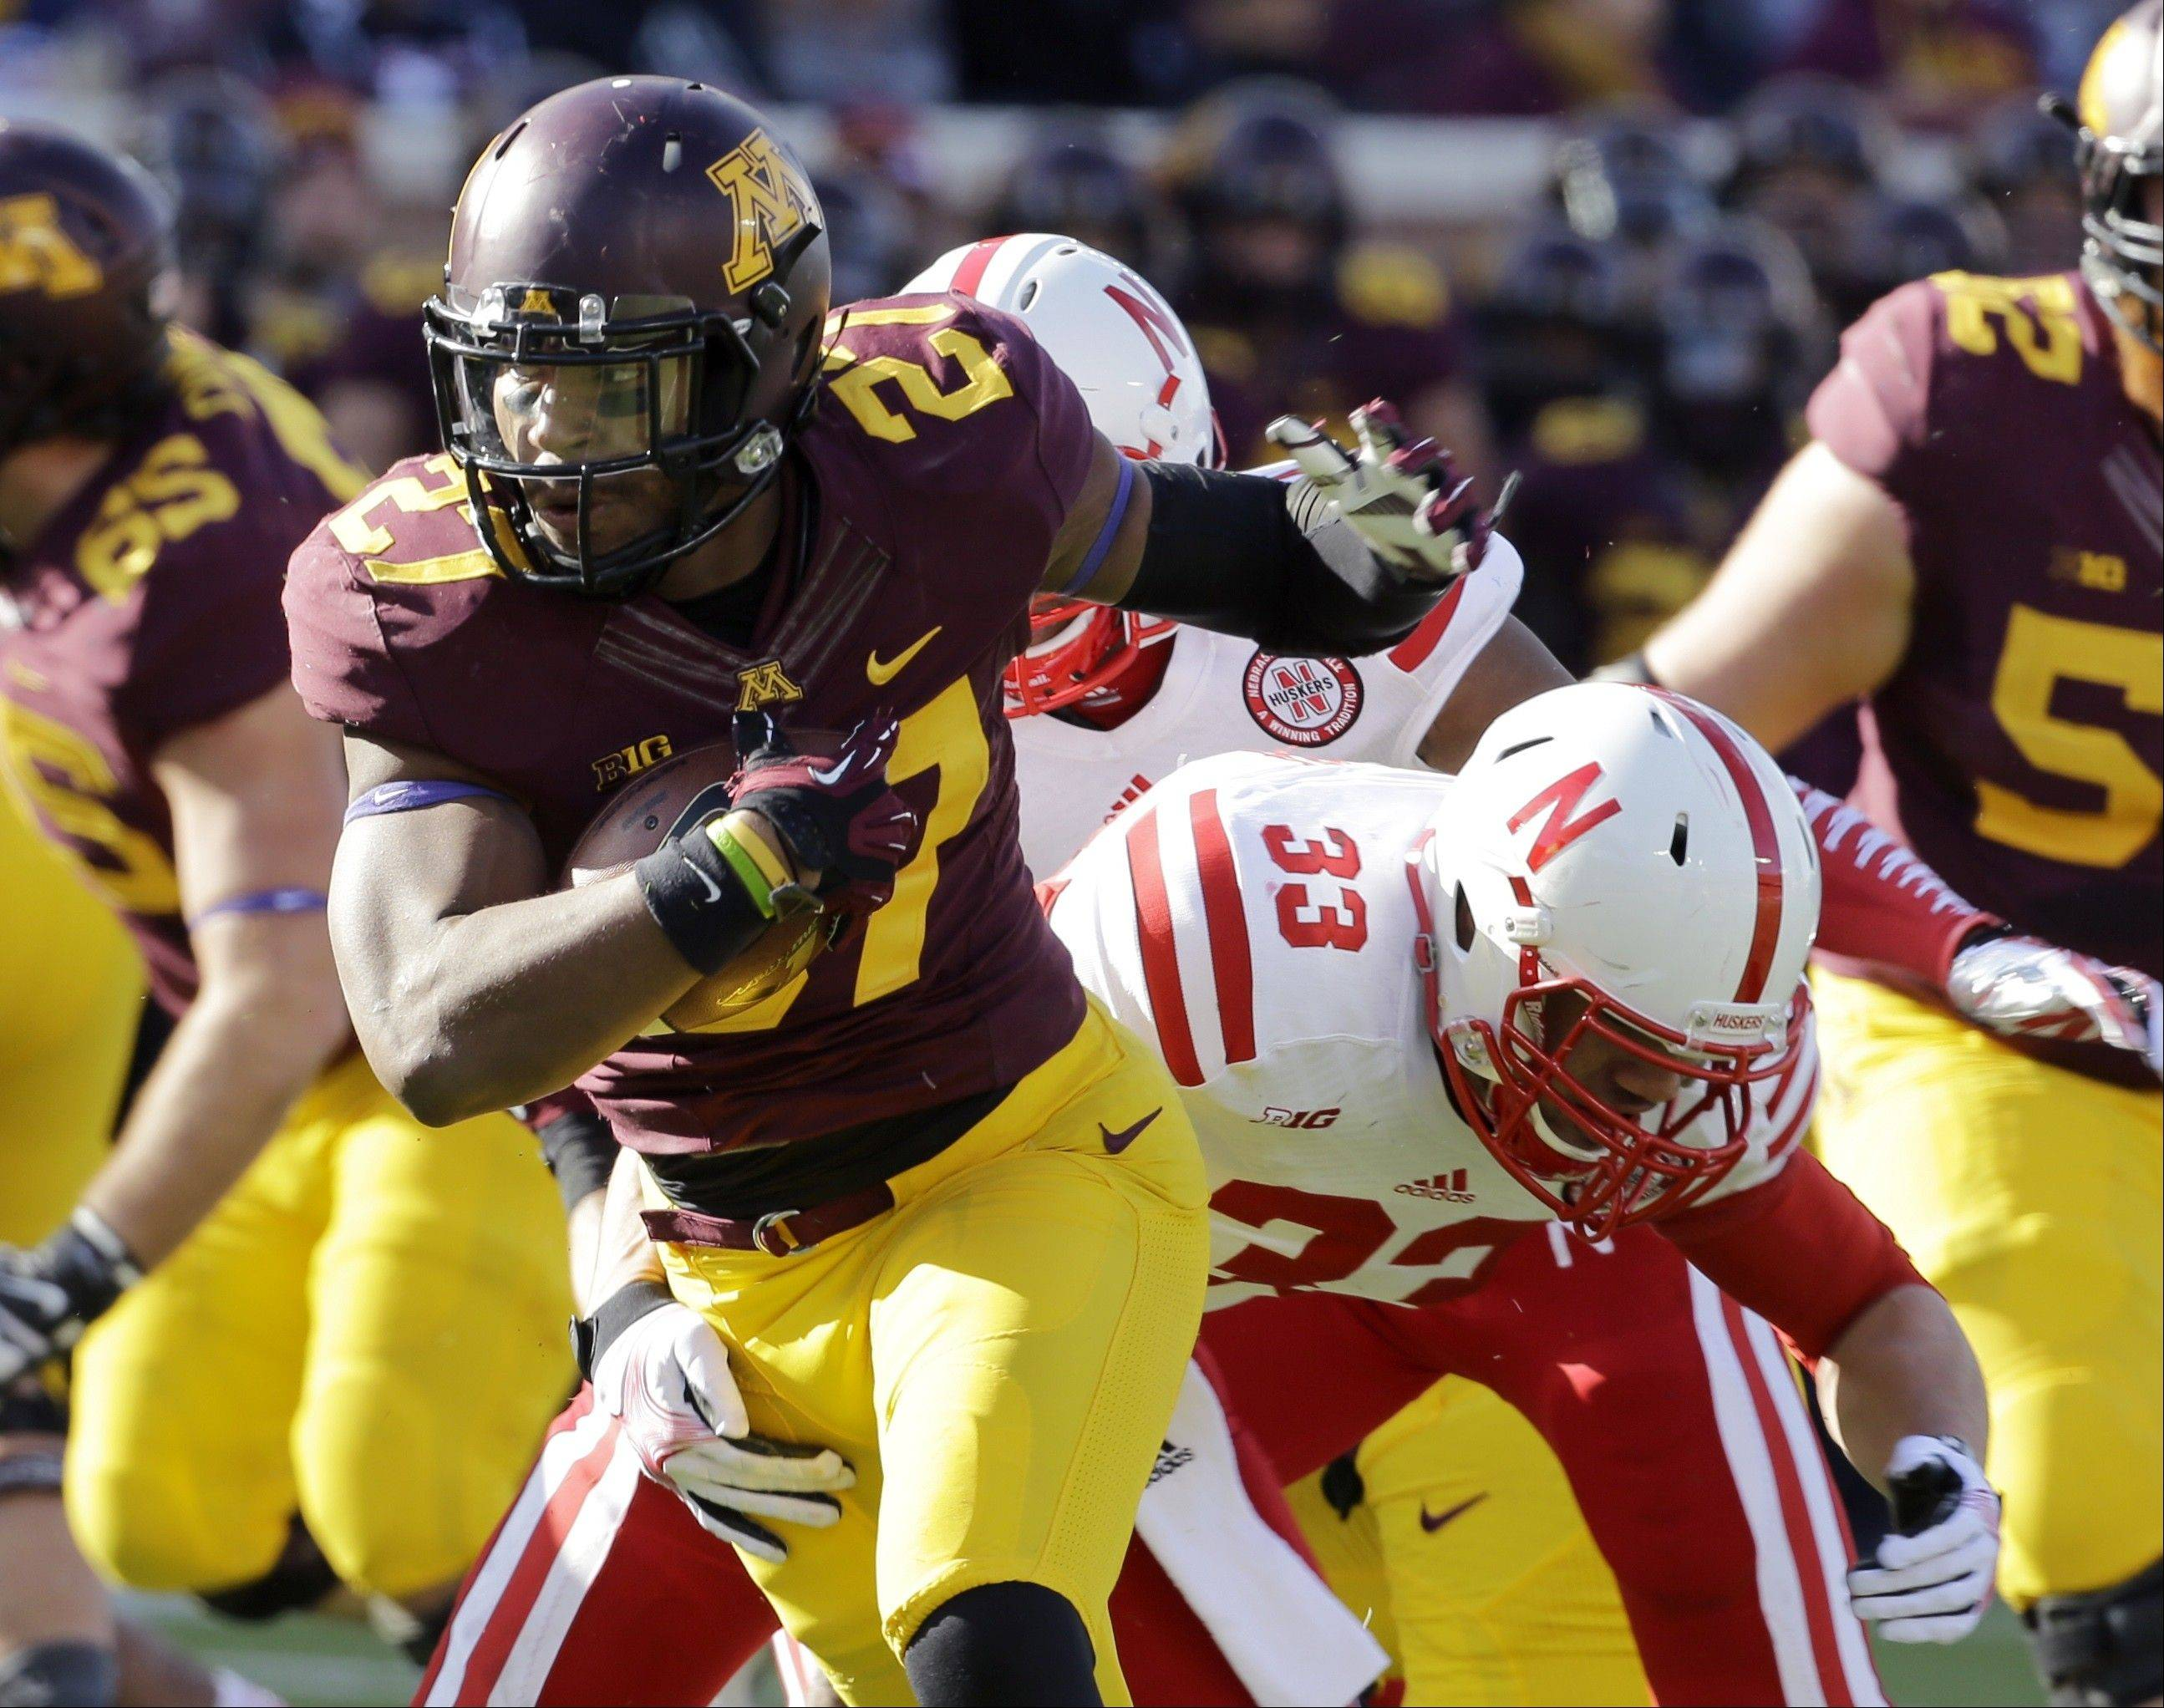 Minnesota running back David Cobb (27) evades Nebraska linebacker Jared Afalava (33) on a 7-yard gain during the first quarter of an NCAA college football game in Minneapolis Saturday, Oct. 26, 2013.